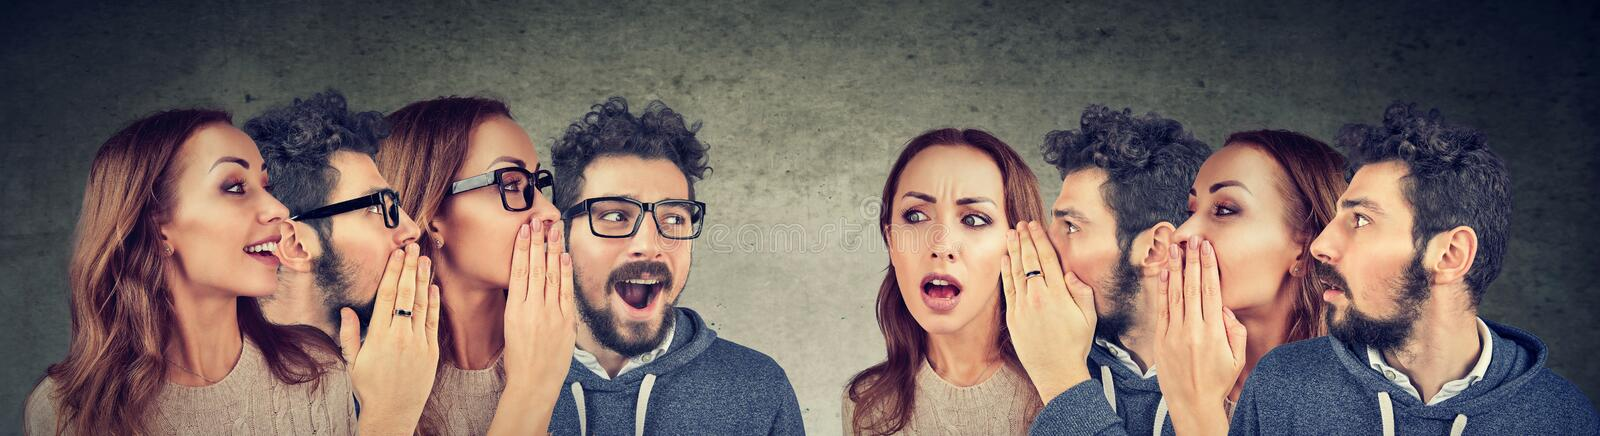 Group of young men and women whispering each other in the ear royalty free stock photos